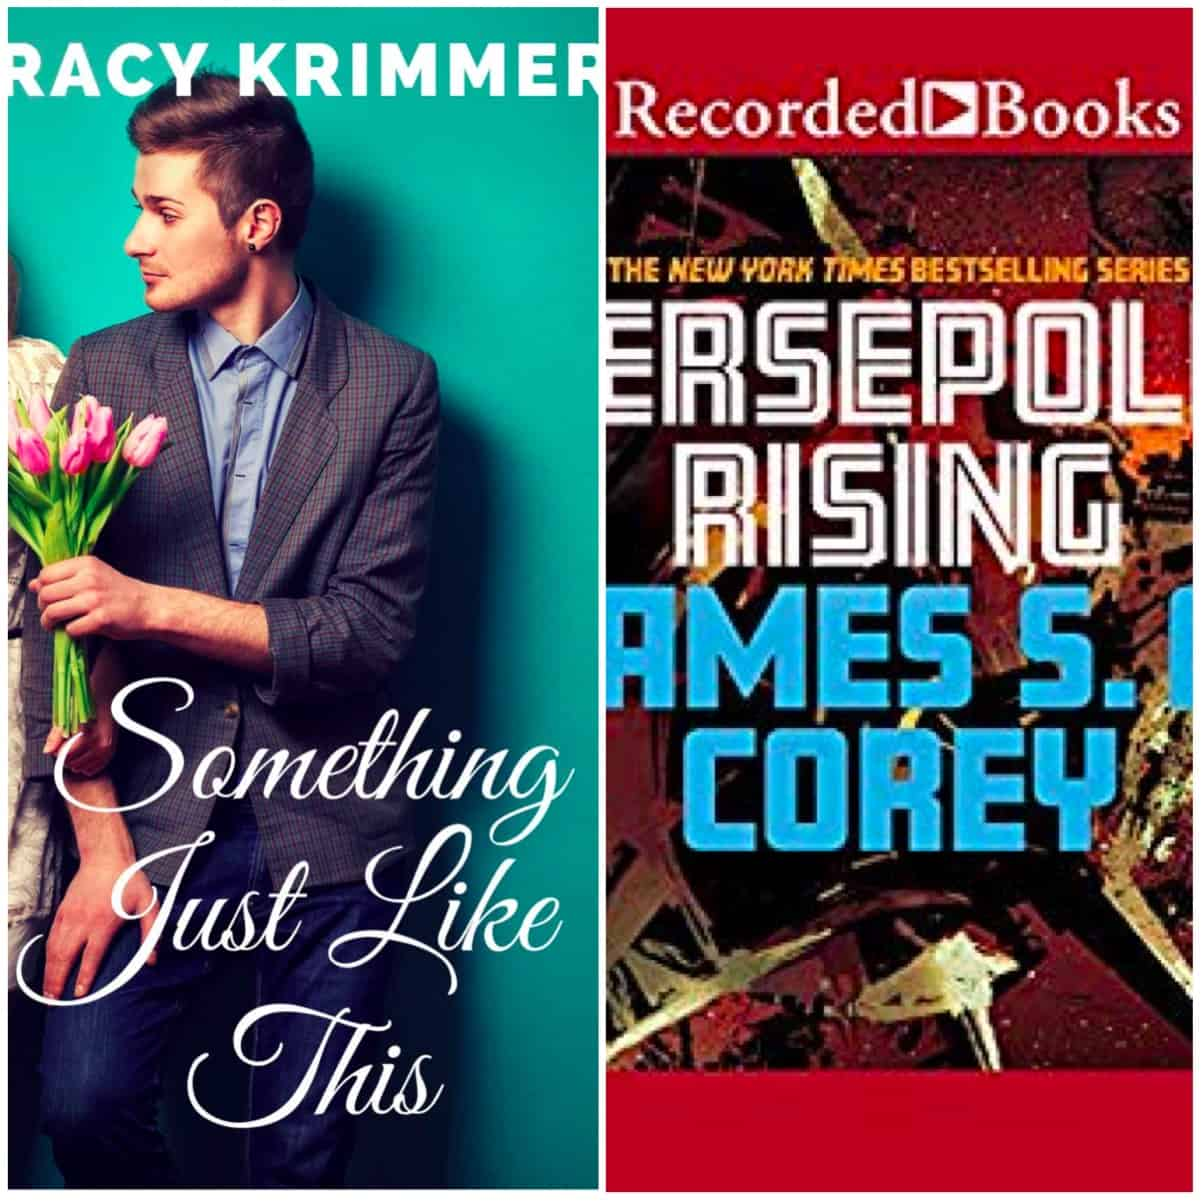 A sweet romance by Tracy Krimmer, more awesome sci-fi from James S. A. Corey, and my lament over a stream of crappy books.